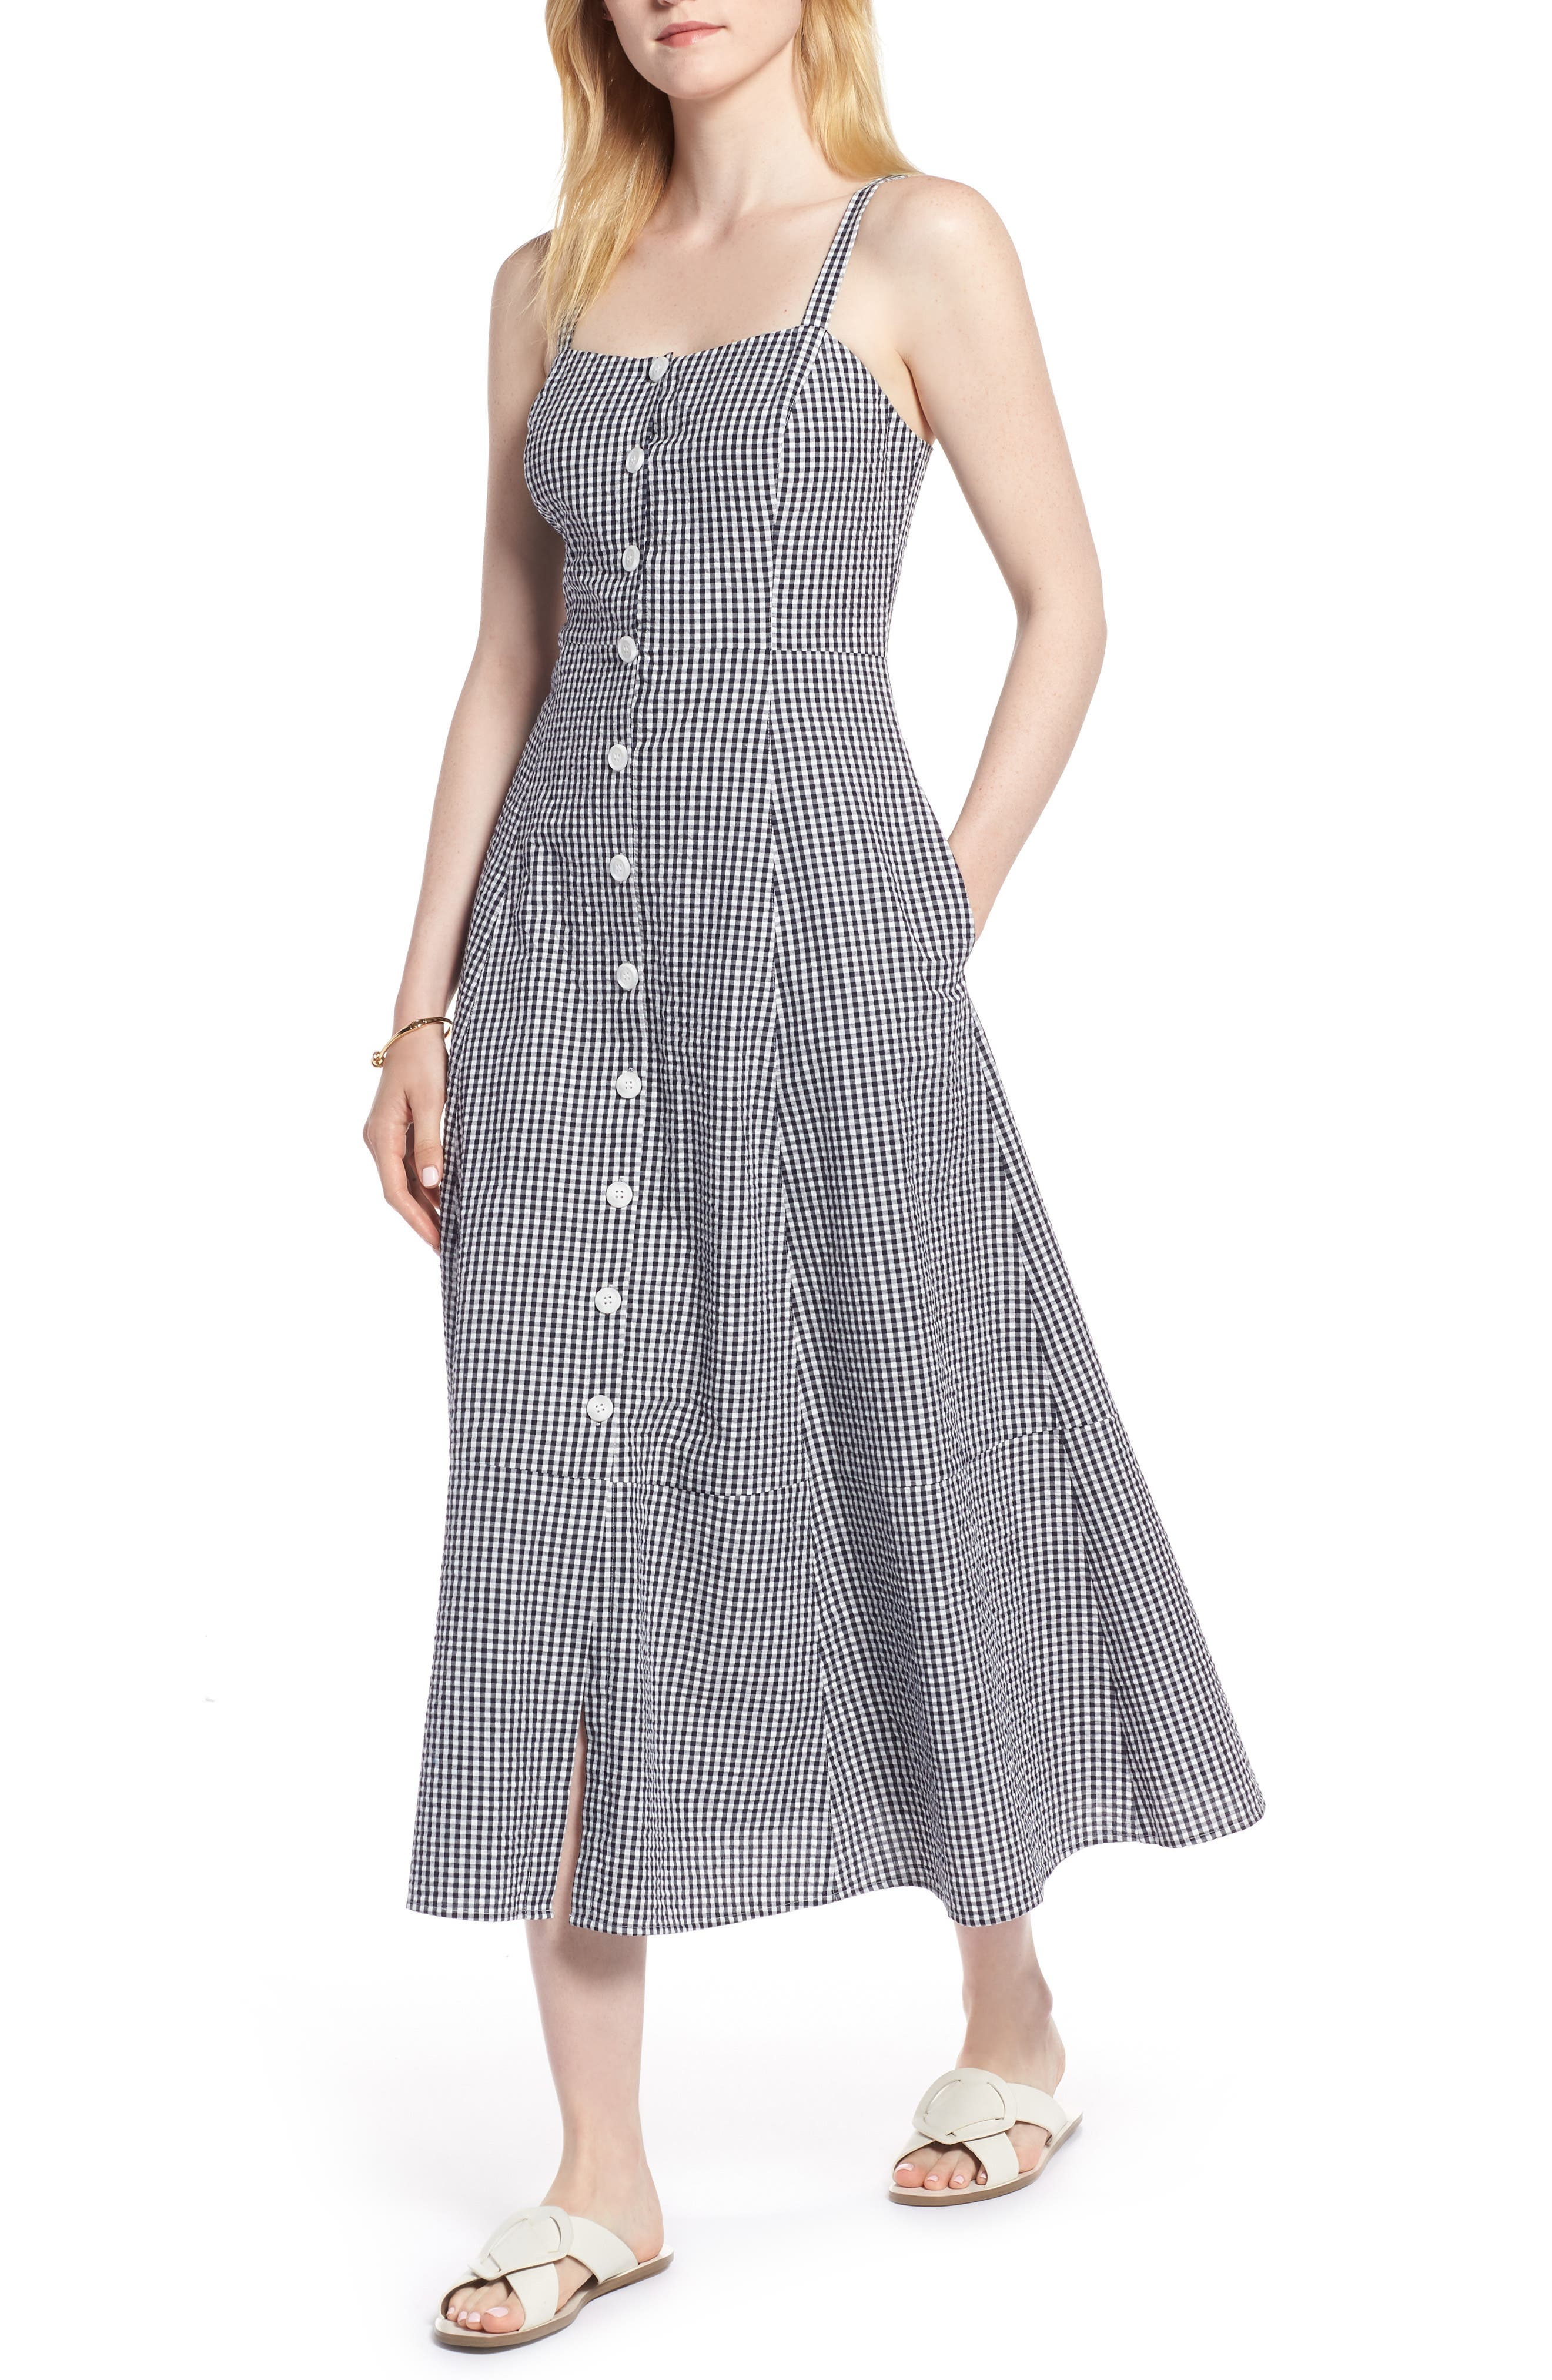 Gingham Button Front Cotton Blend Dress,                             Main thumbnail 1, color,                             Navy- White Gingham